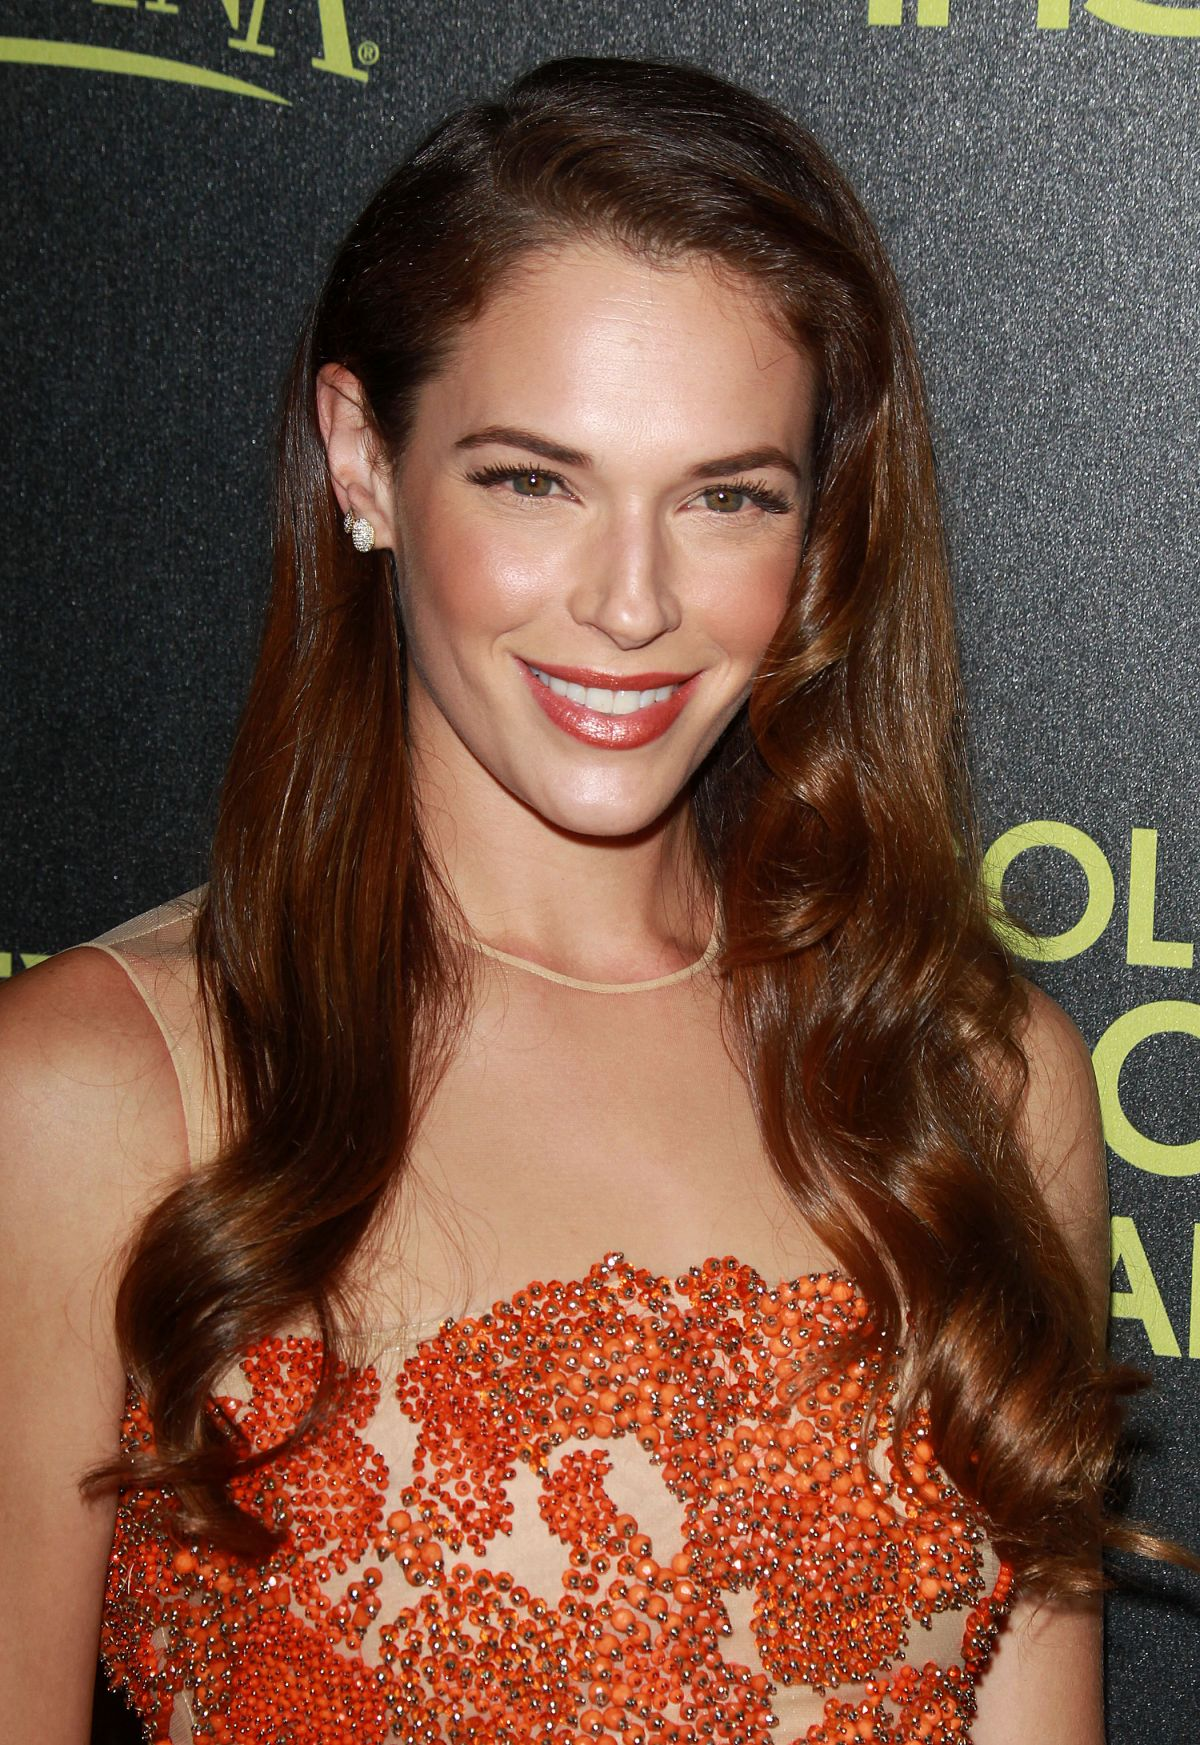 AMANDA RIGHETTI at Hfpa abd Instyle Celebrate 2015 Golden Globe Award Season in Hollywood